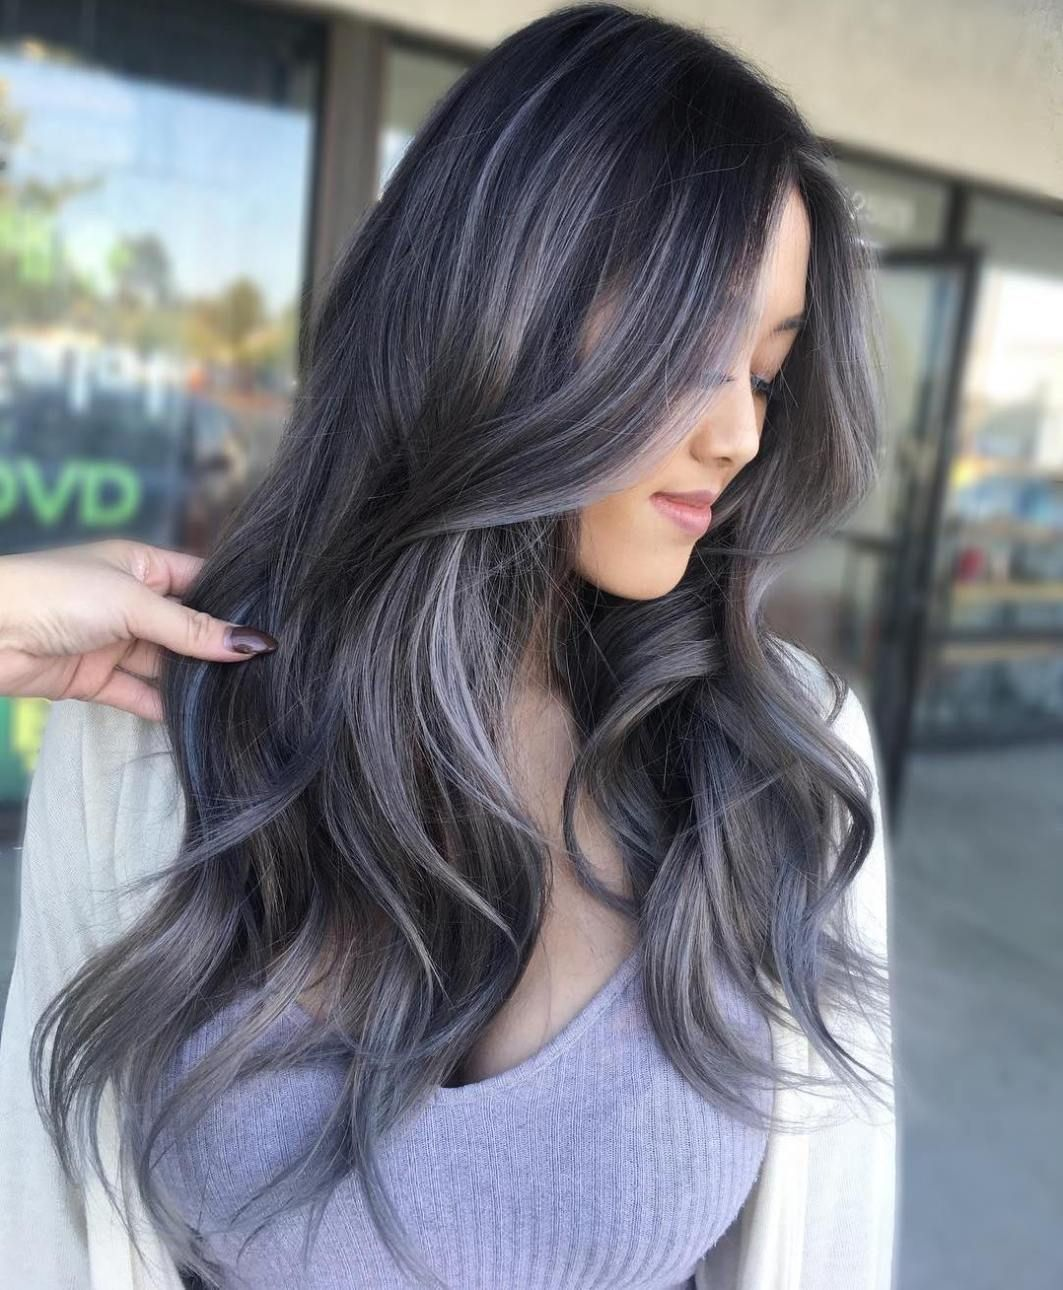 Almost Like Ombre But Less Structured Than Balayage Hair Color Is Usually A Free Hand Design Combines The Colors Are Bright And Dark Brown Blonde